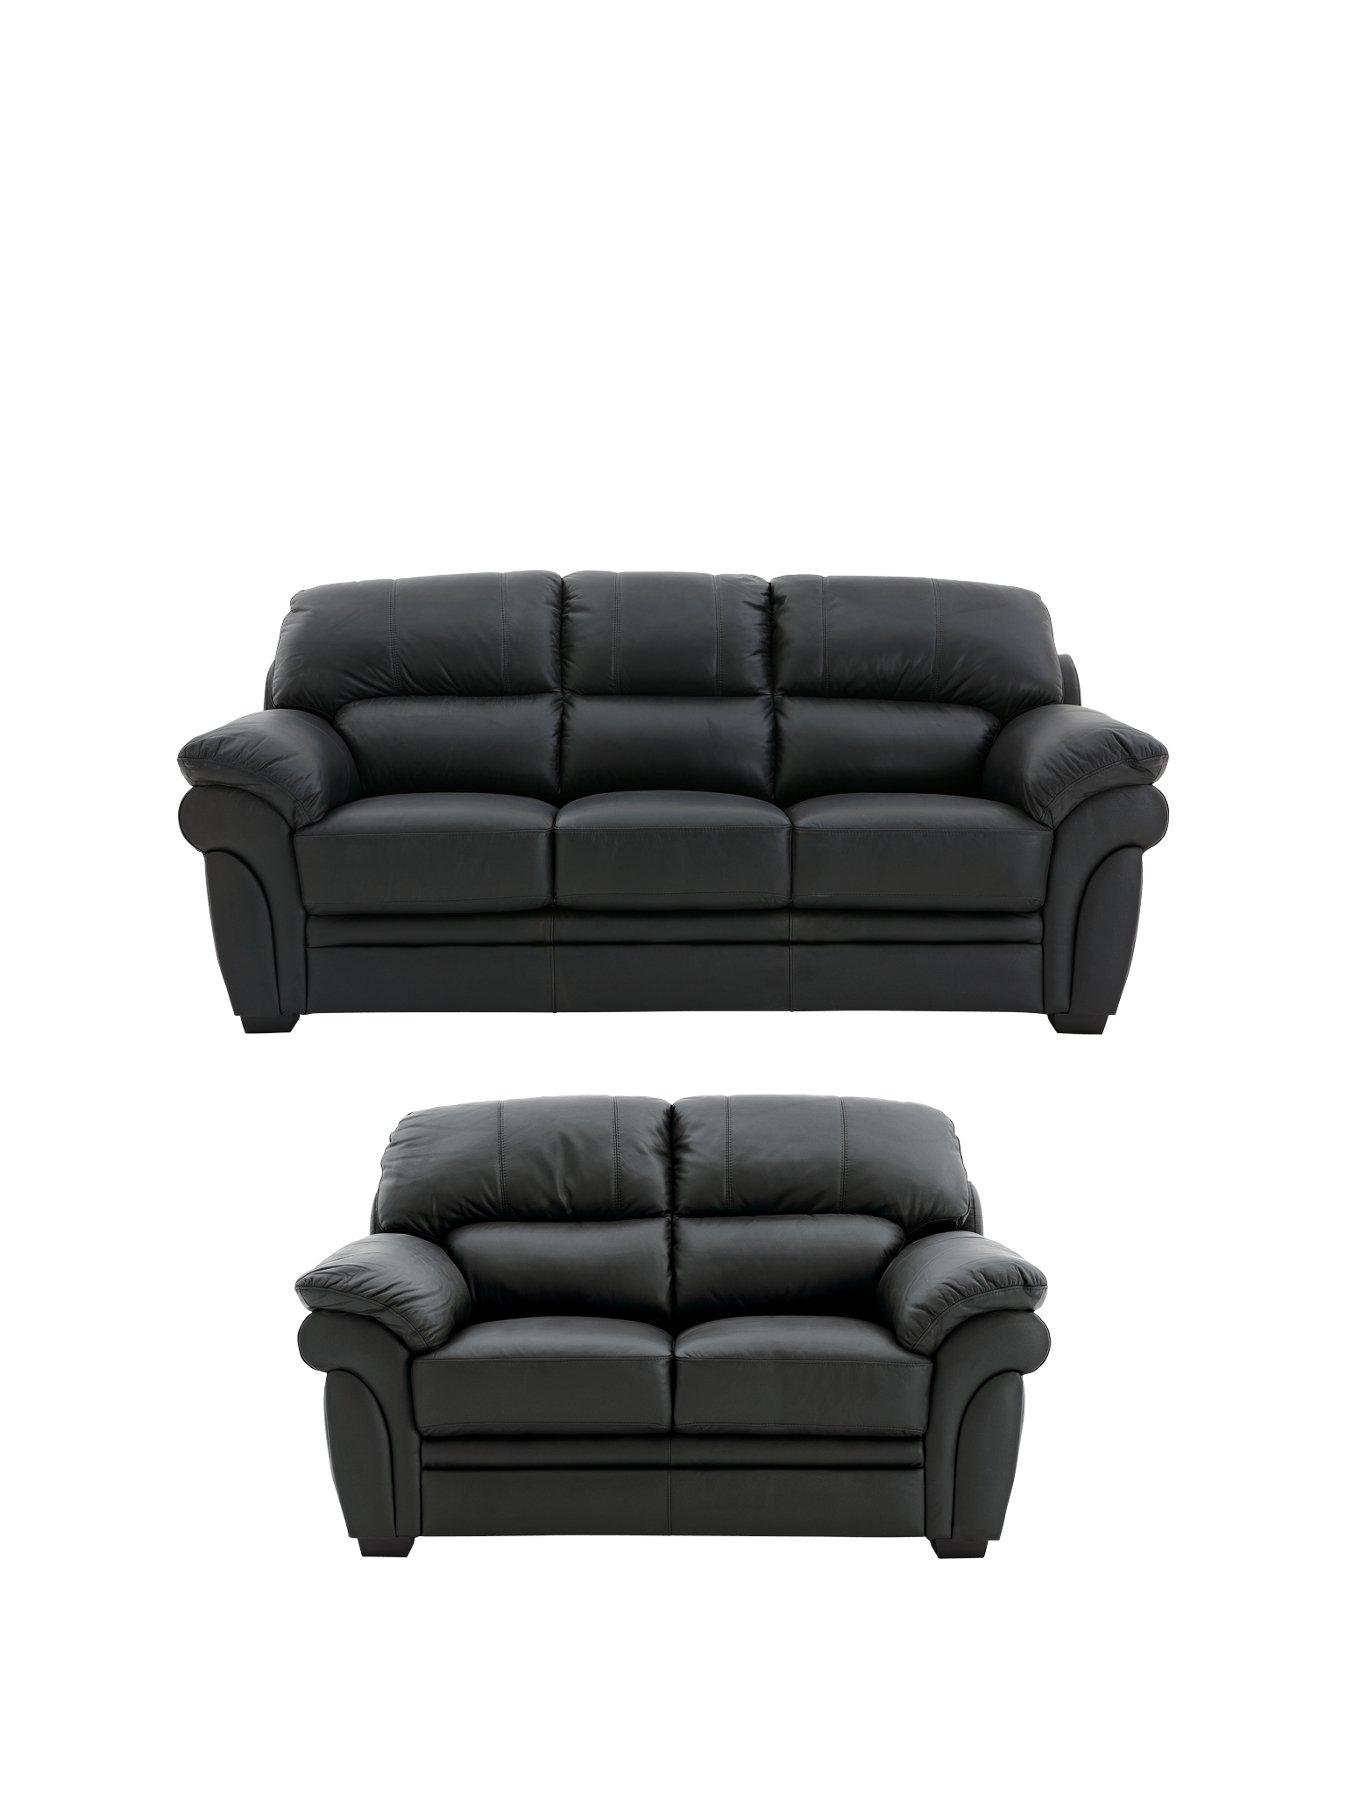 portland leather 3seater plus 2seater sofa buy and save littlewoods com